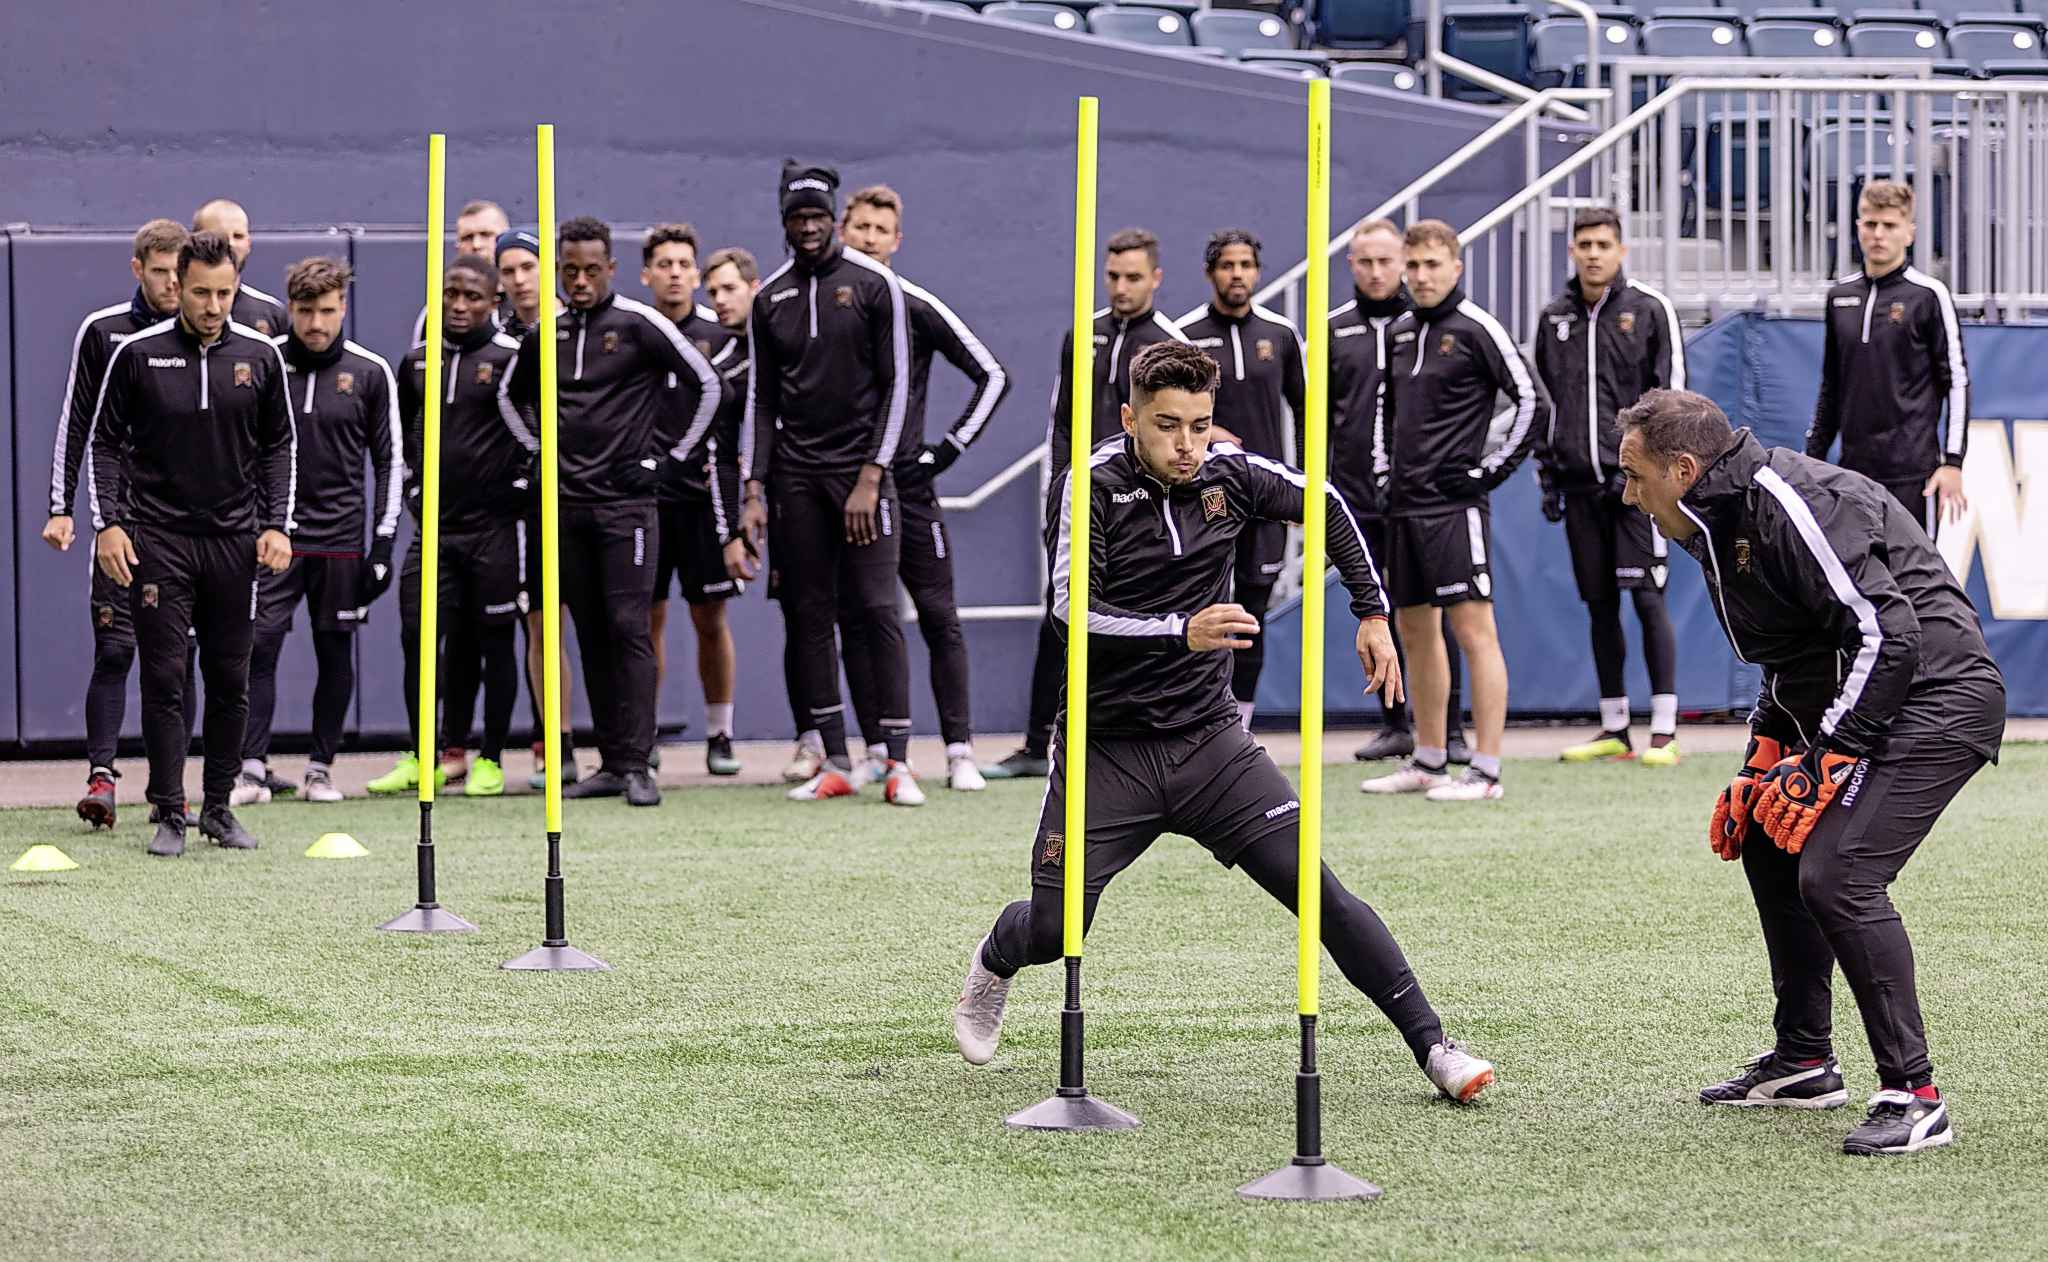 Valour FC team members get put through some drills at Investors Group Field ahead of their home opener on Saturday.